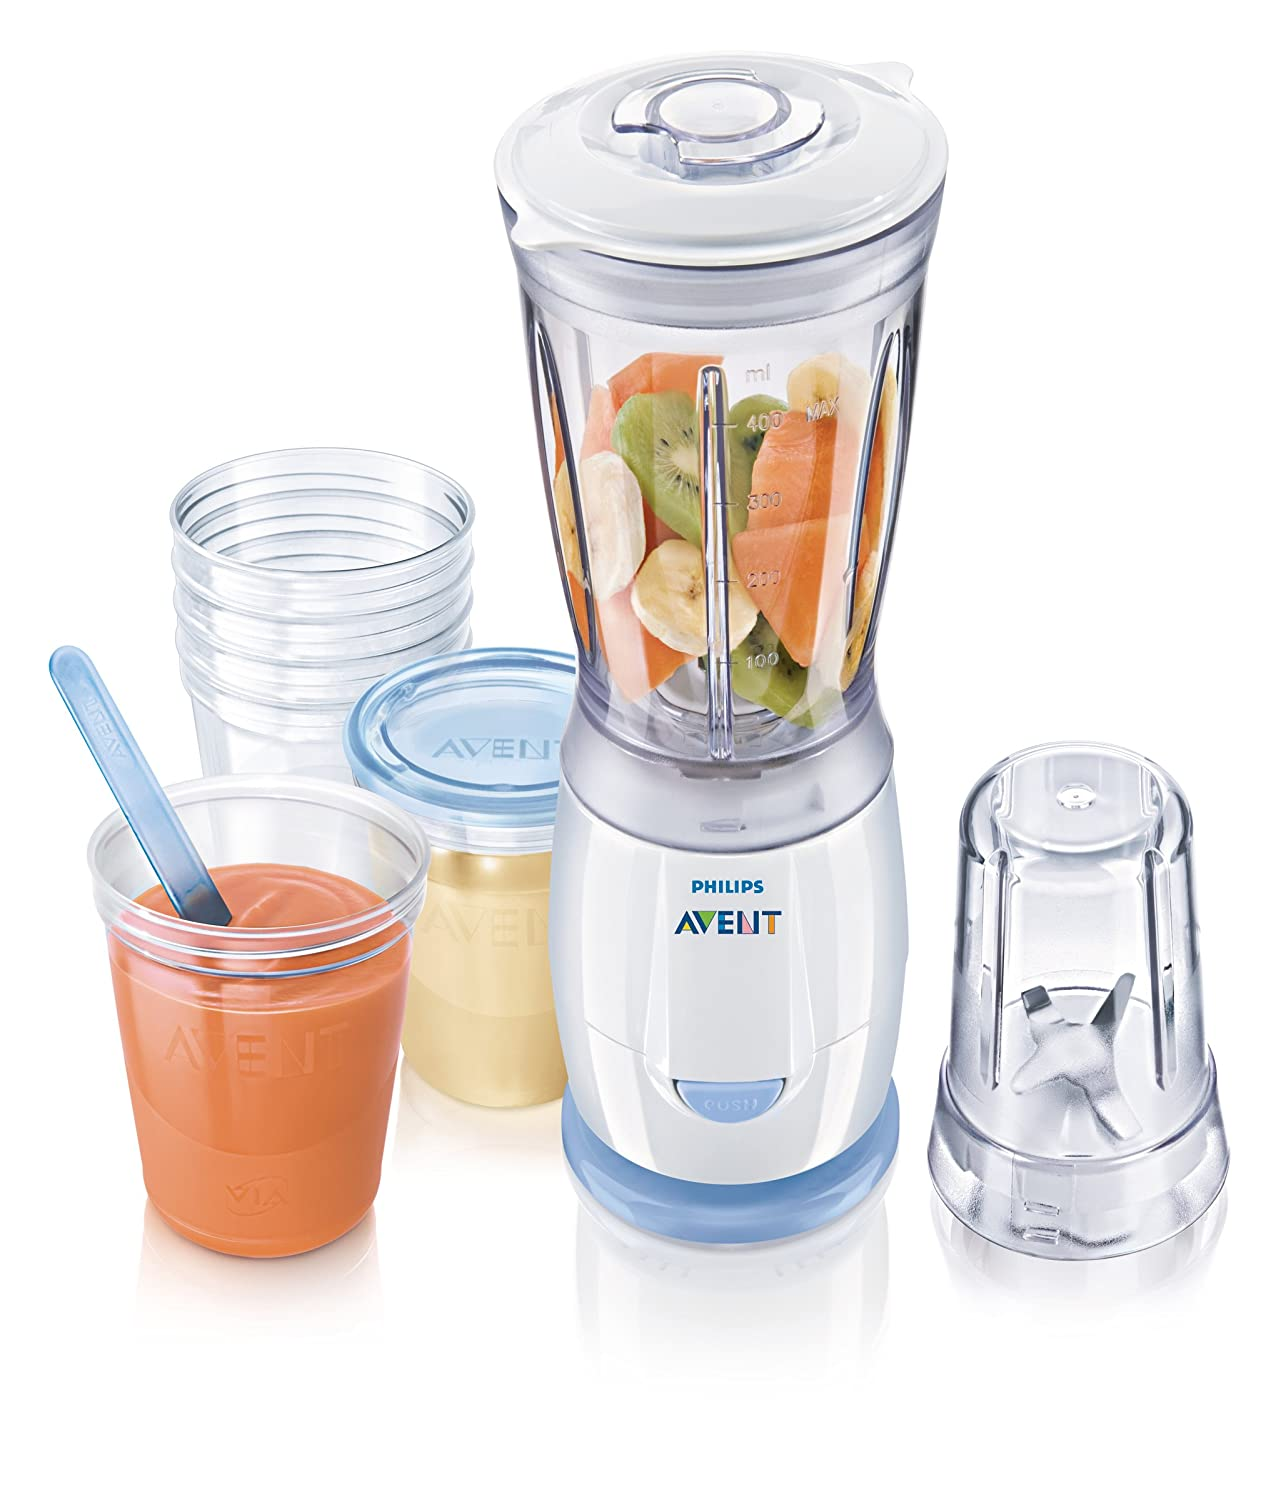 Buy Avent - Mini Blender Online at Low Prices in India - Amazon.in | {Mixer & zerkleinerer 31}